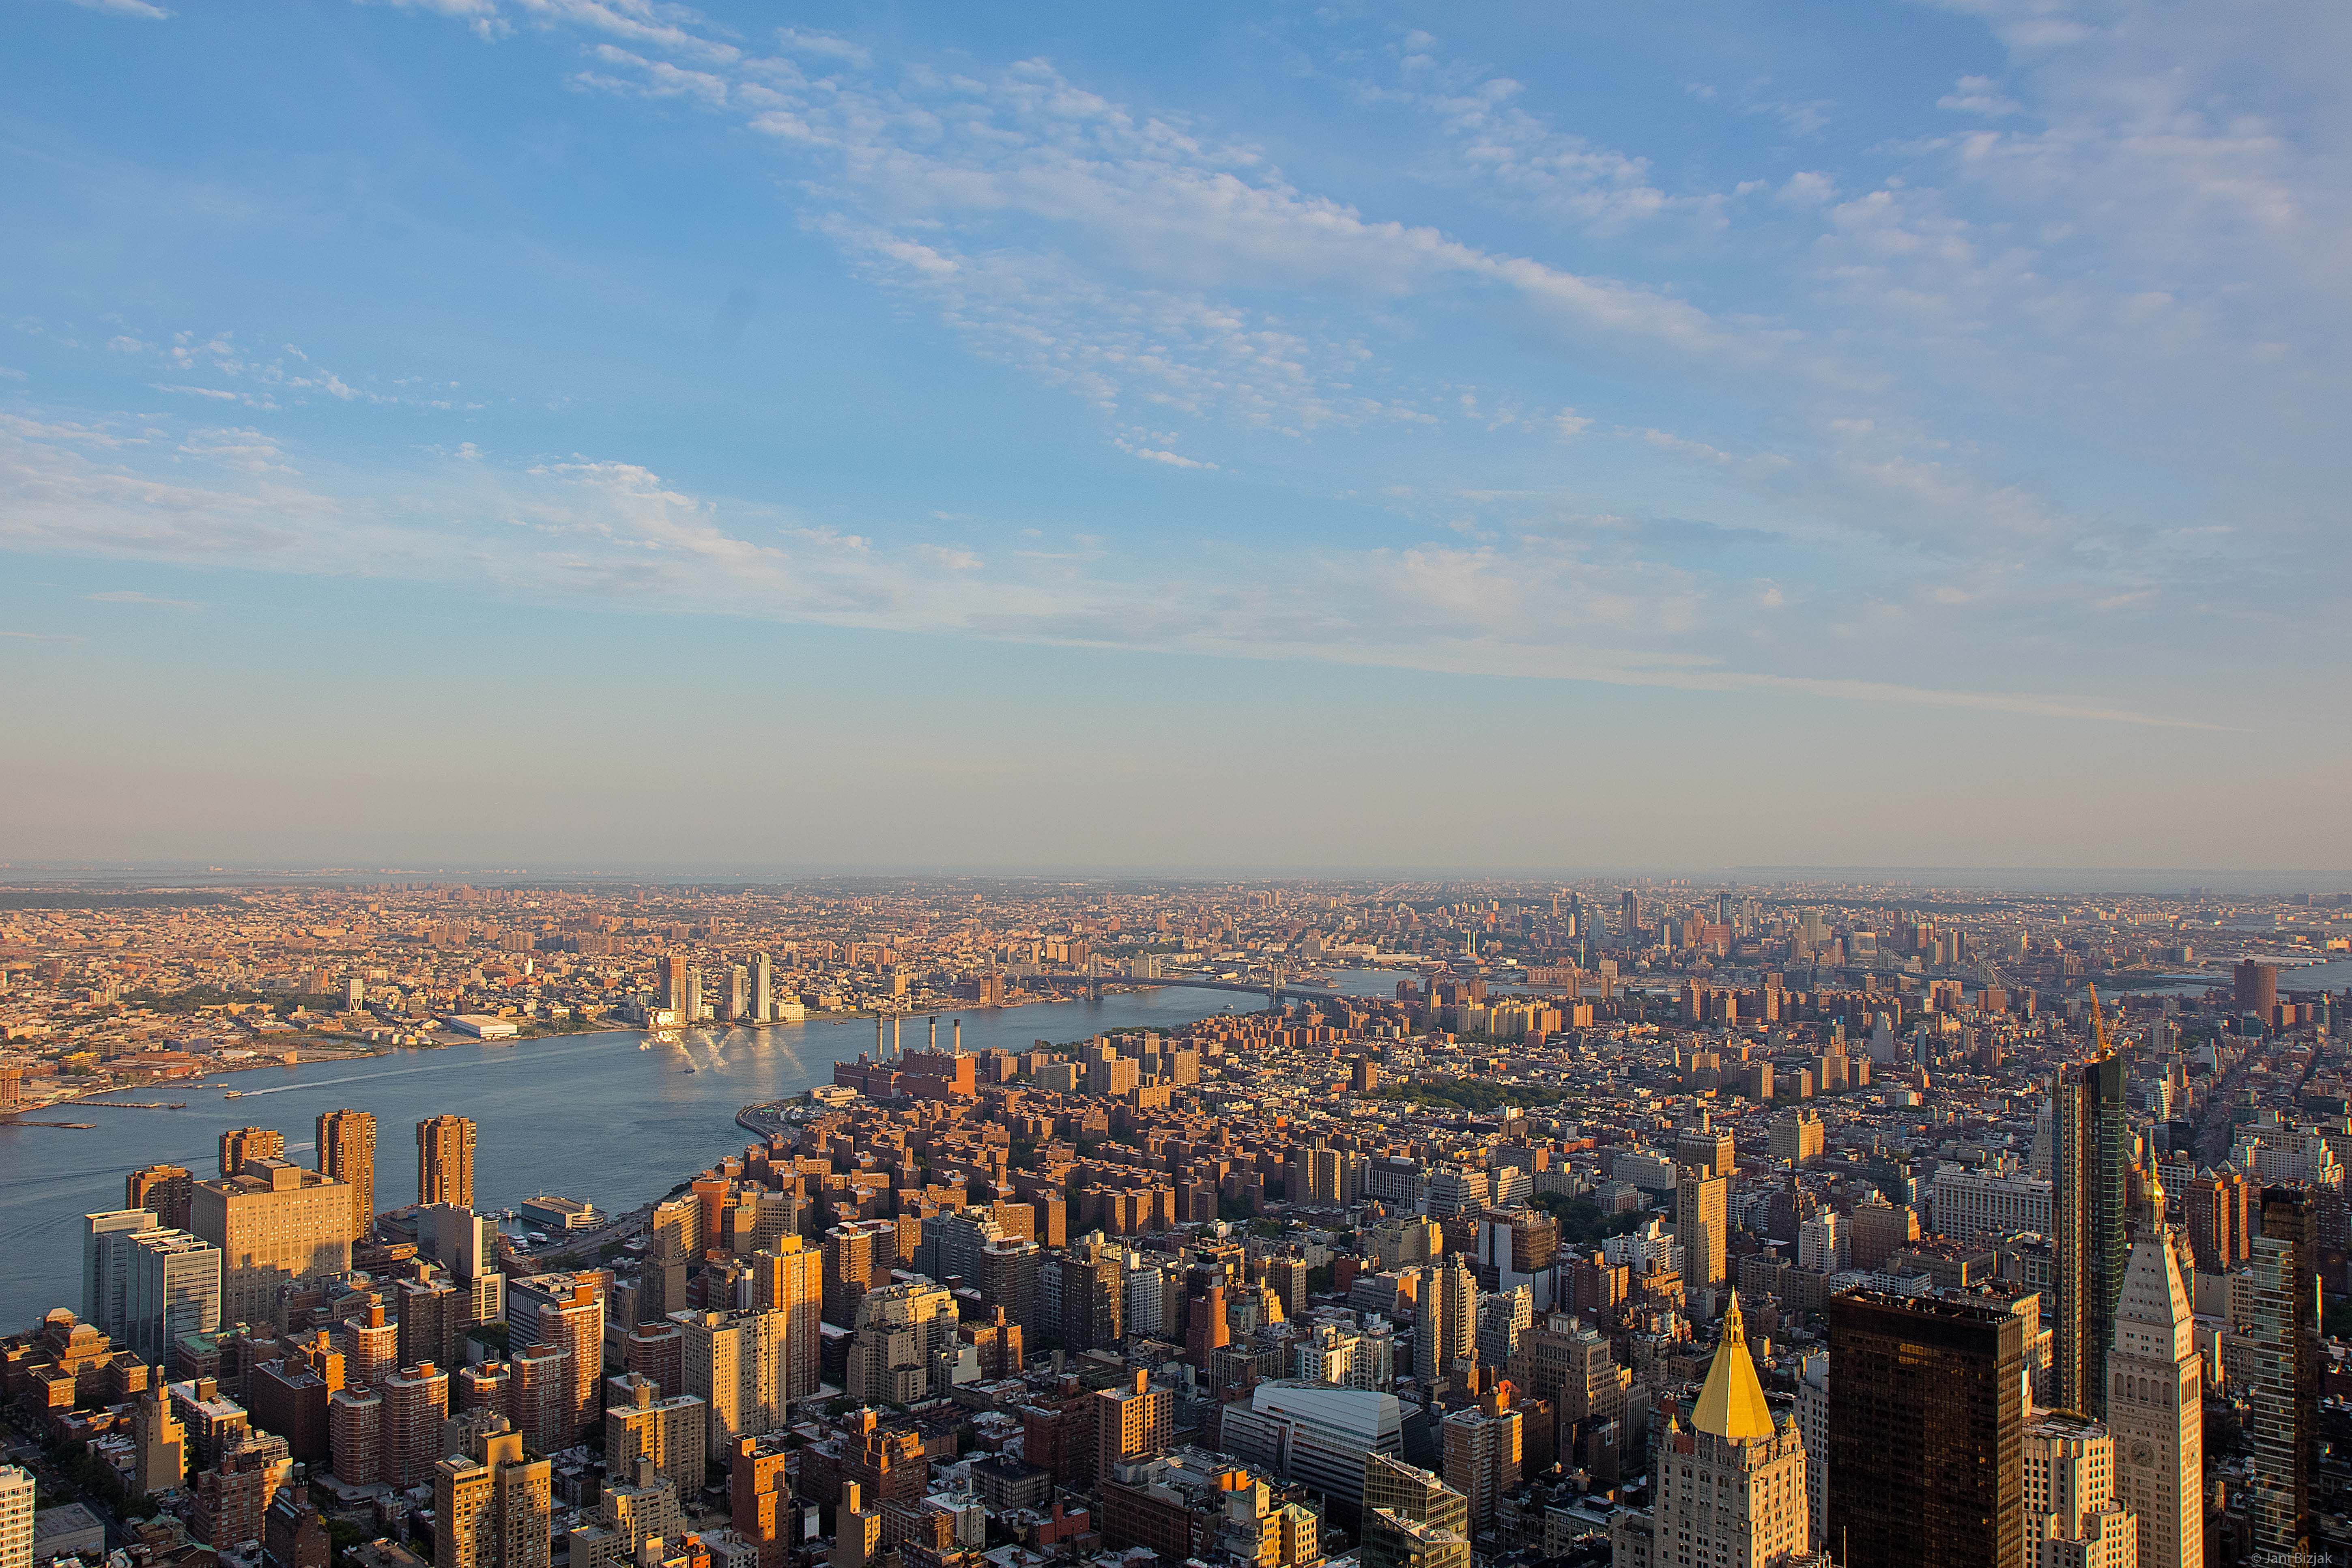 Brooklyn bridge from Empire State Building.